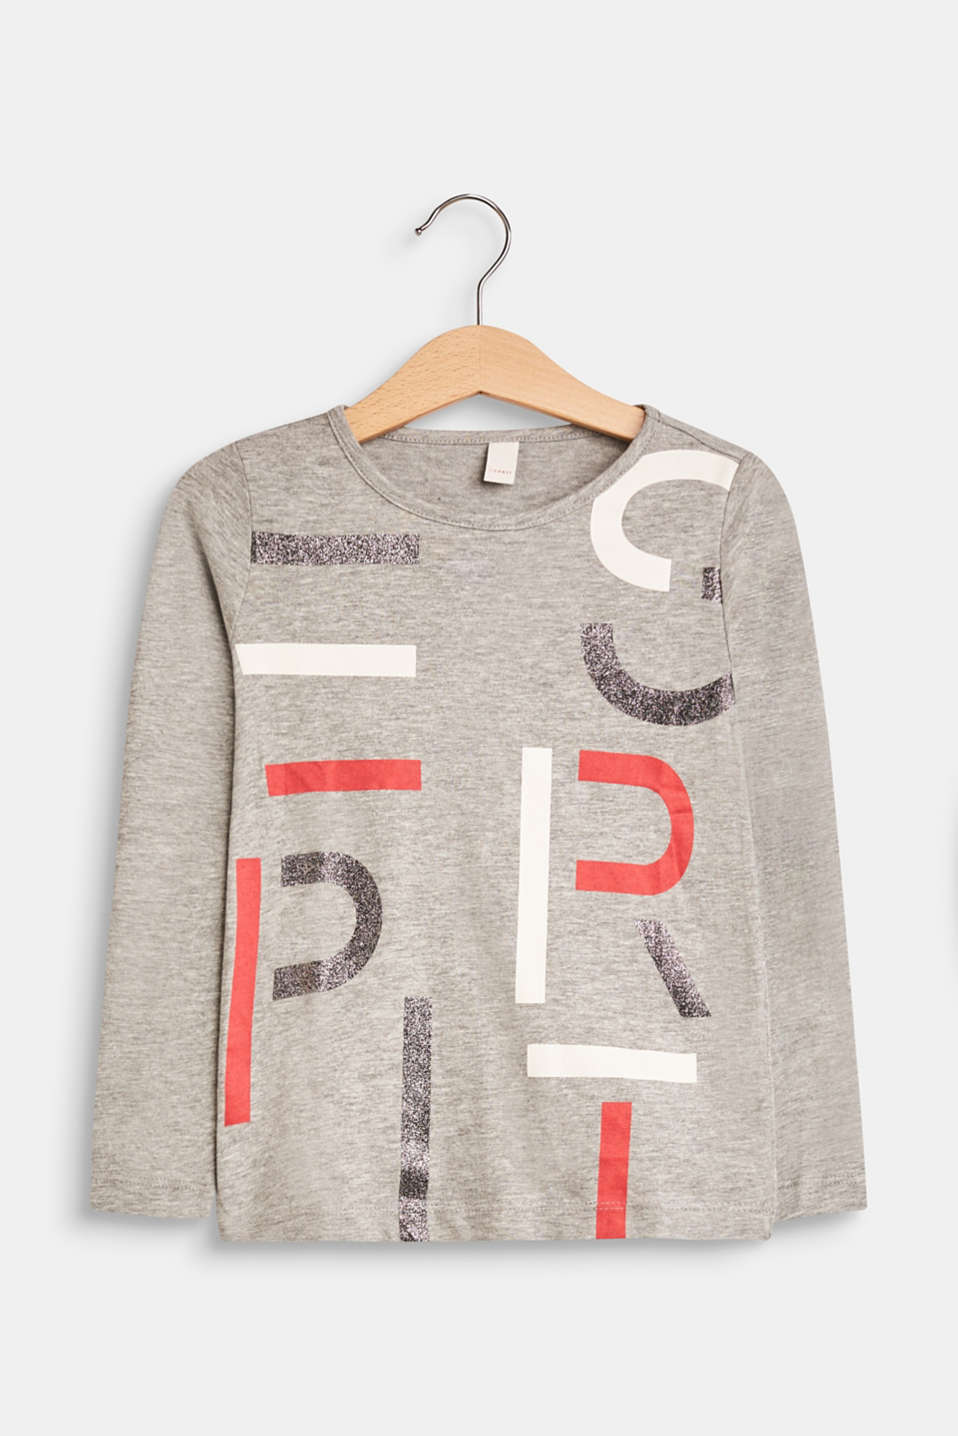 Esprit - Long sleeve top with shiny logo print, 100% cotton